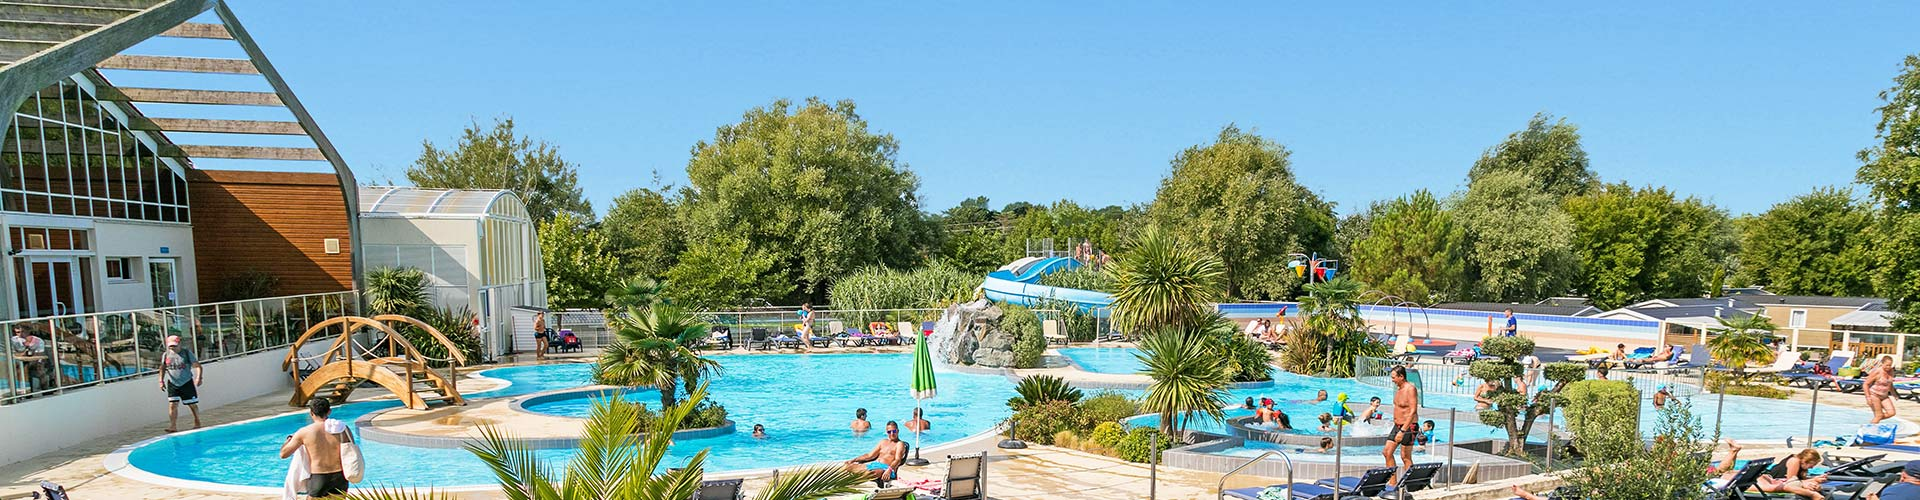 Camping 5 toiles ile d 39 ol ron camping saint georges d - Camping la rochelle piscine ...